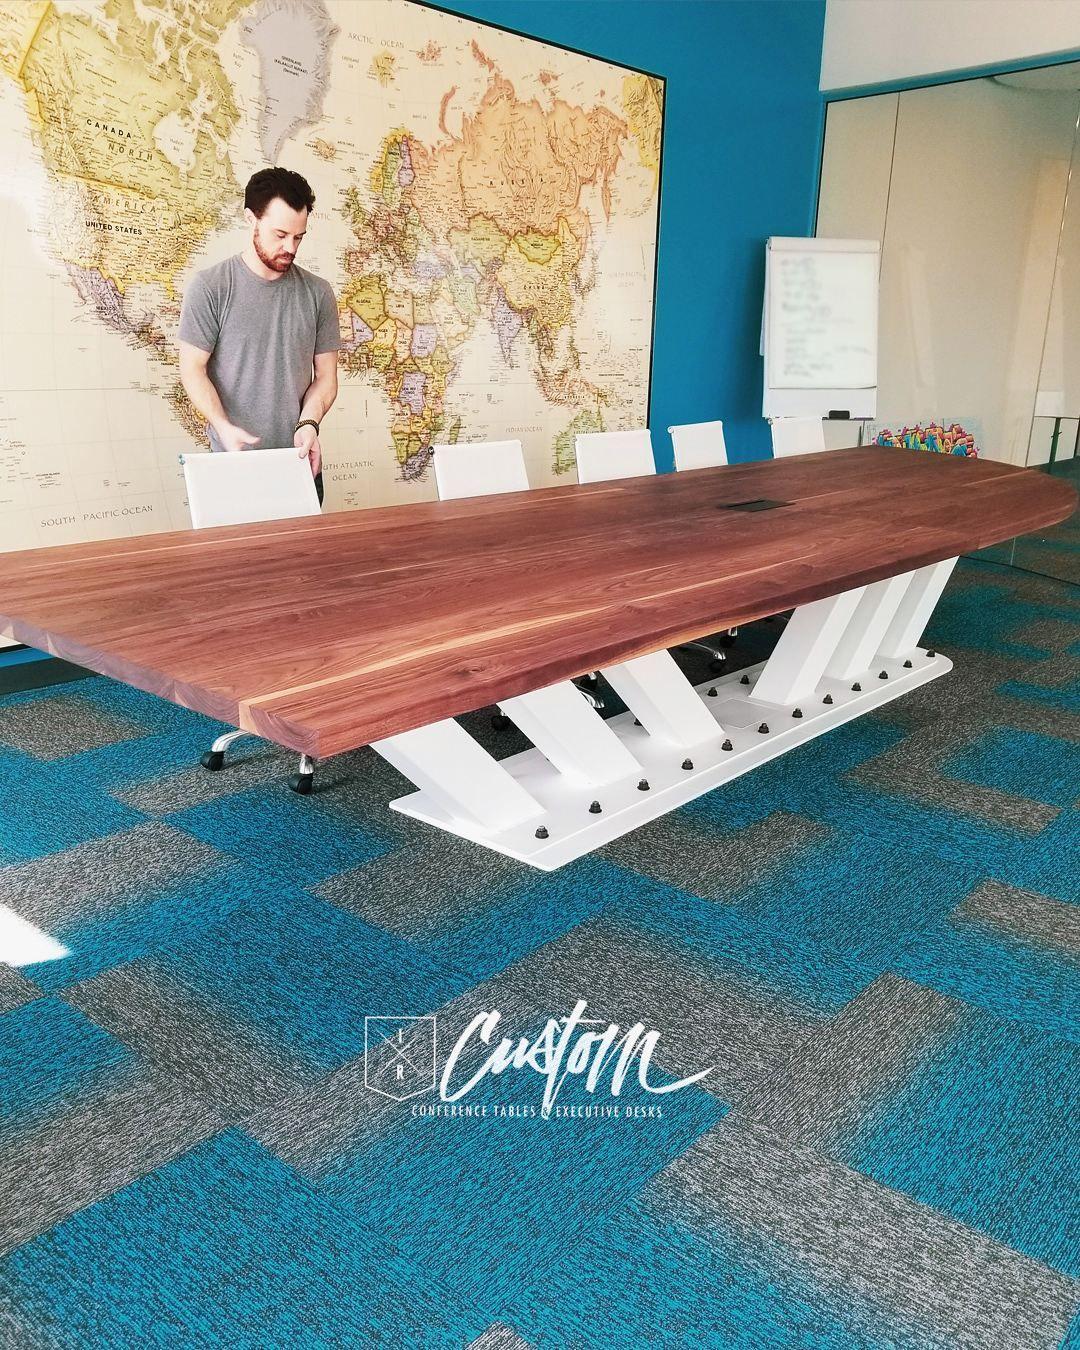 How Many People Could You Fit Around This Ft X Ft Walnut - 5 ft conference table